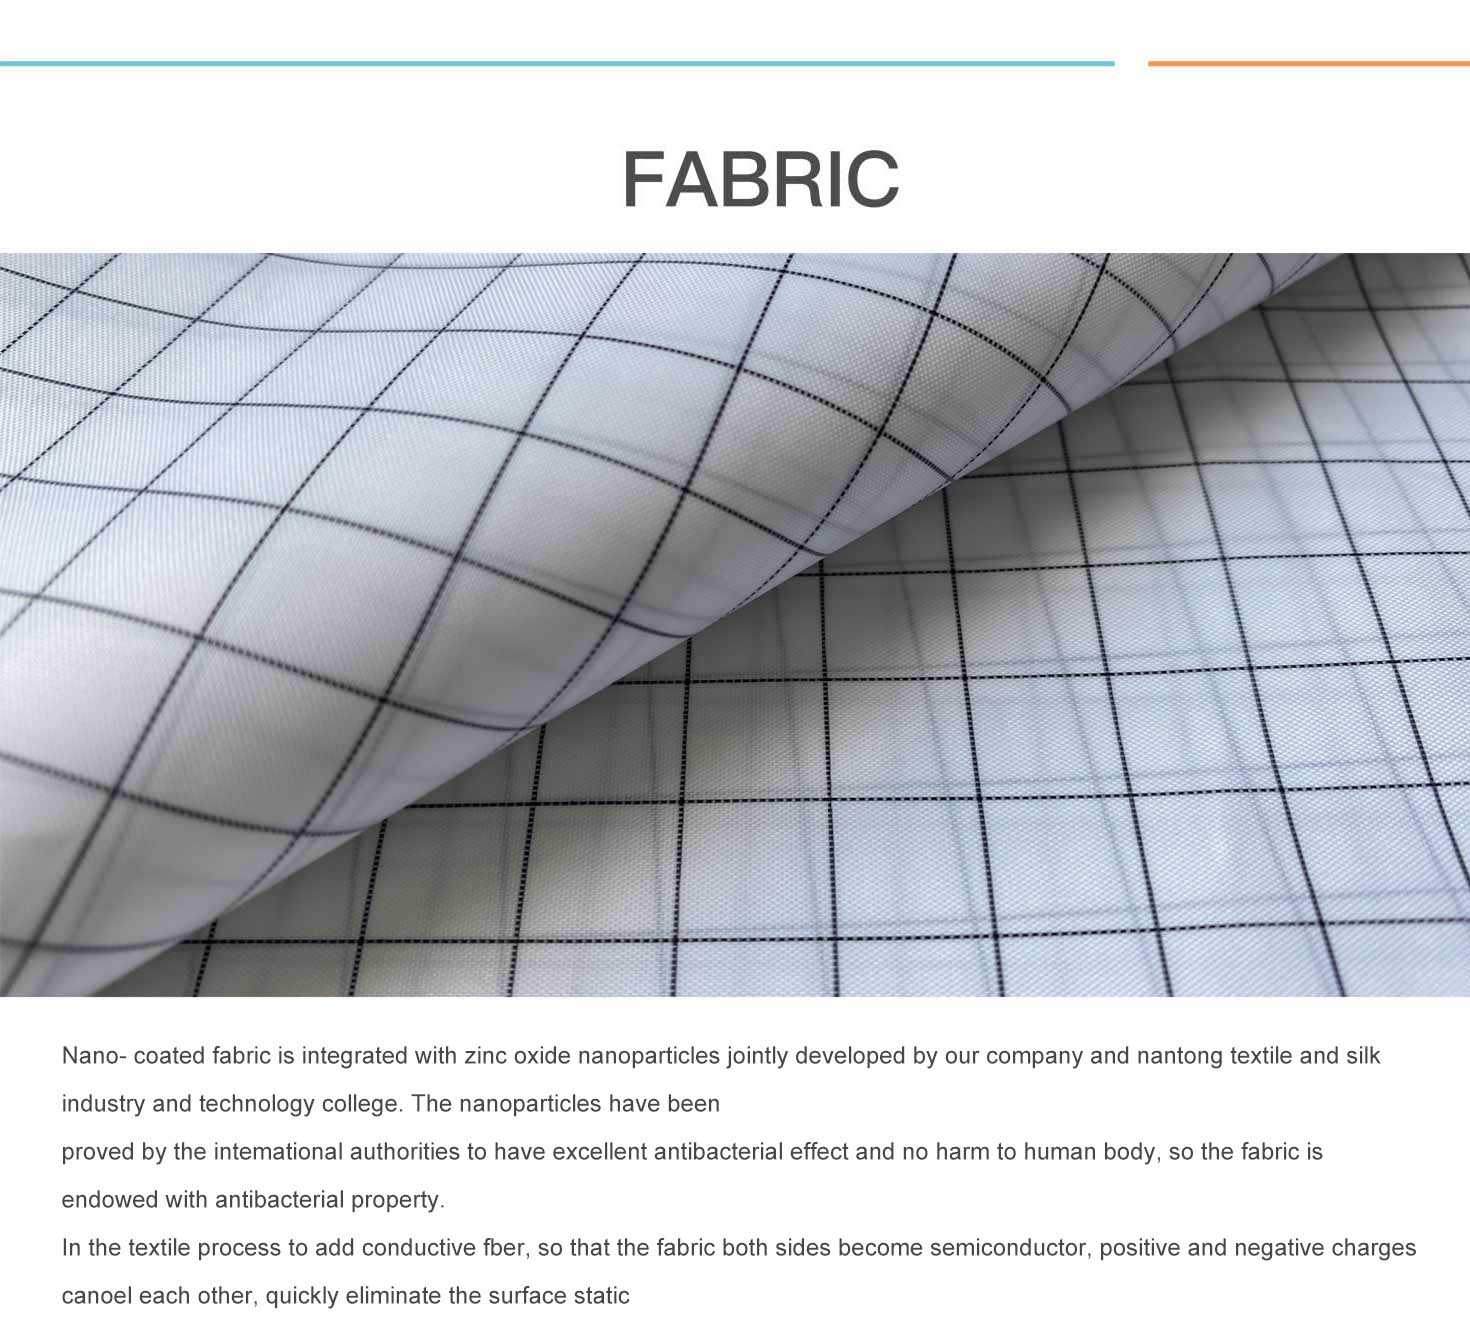 Is the moisture permeability of the fabric the same as the breathability